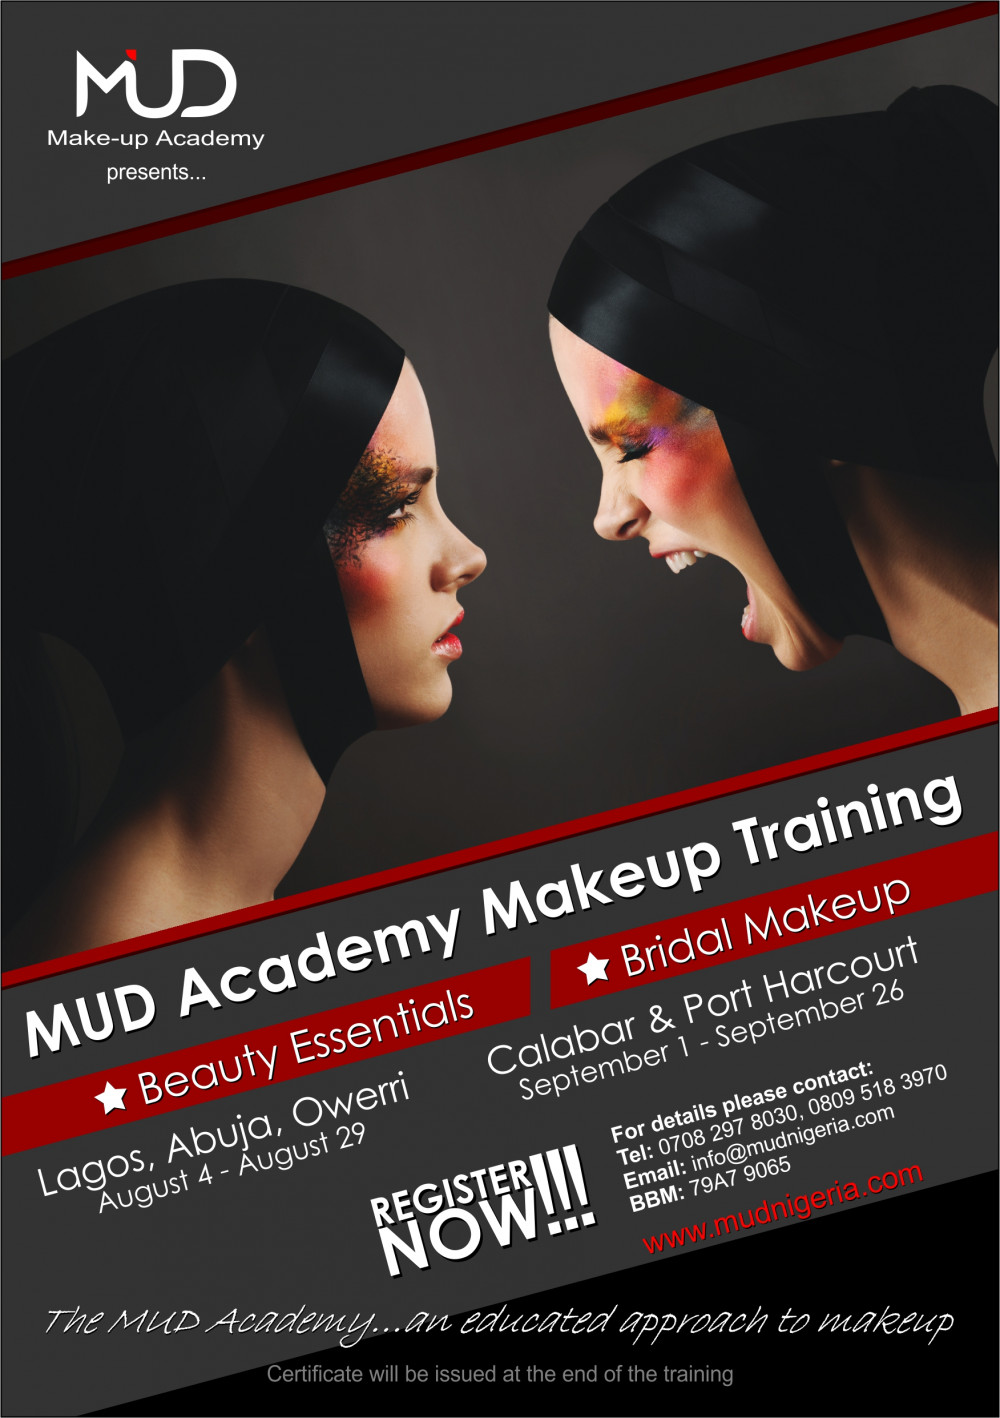 Get Over 30 Discount On Tuition Fees For Mud Academy Make Up